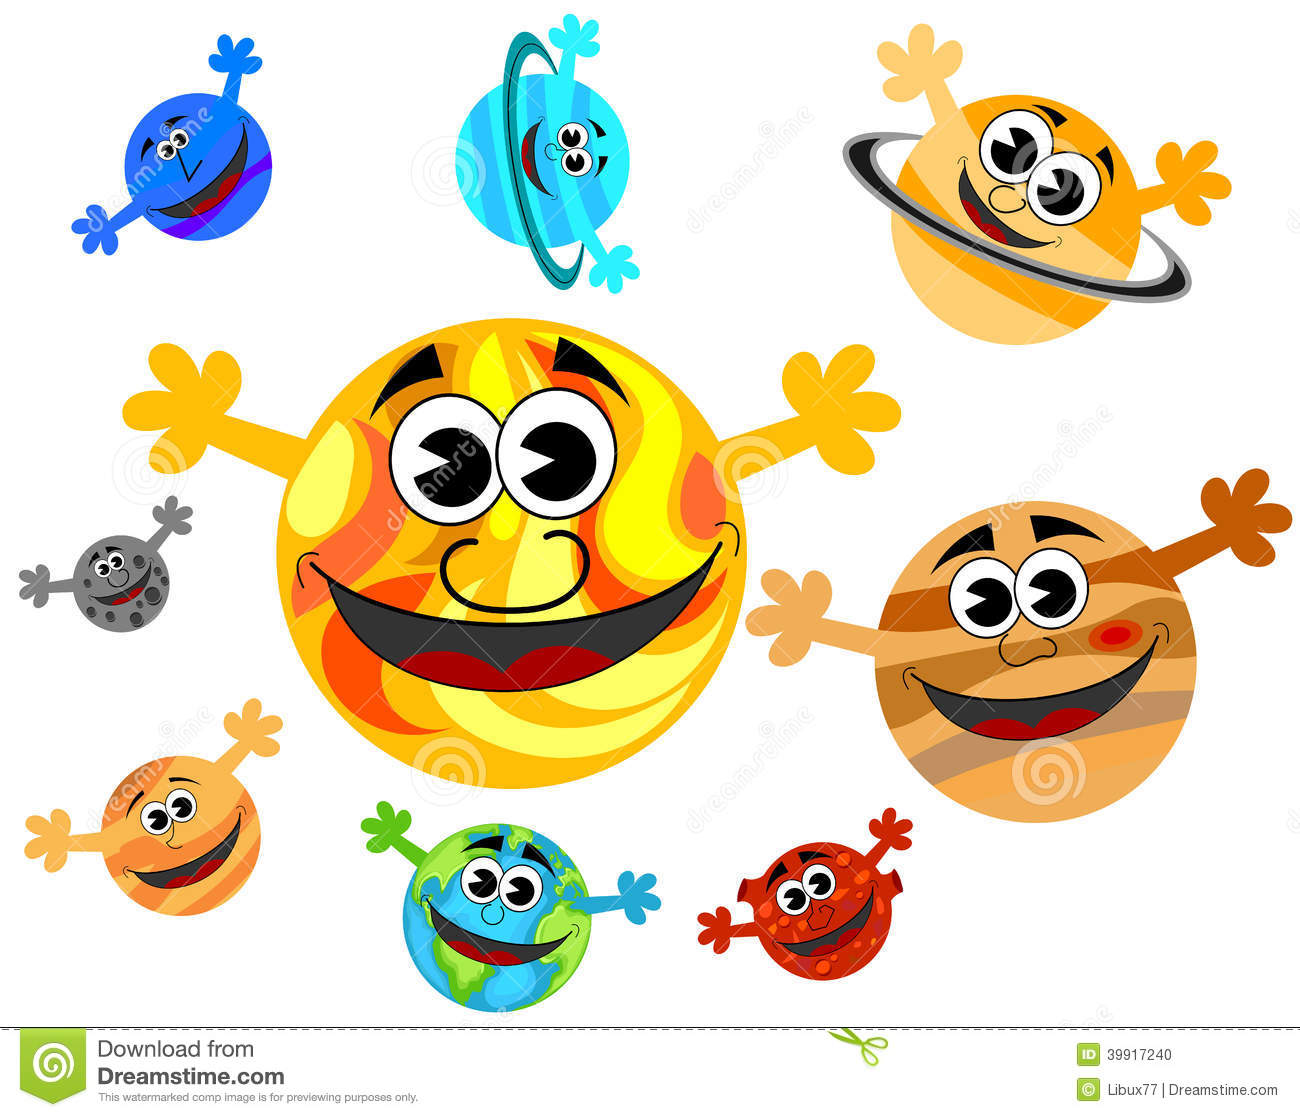 Planets clipart funny #6